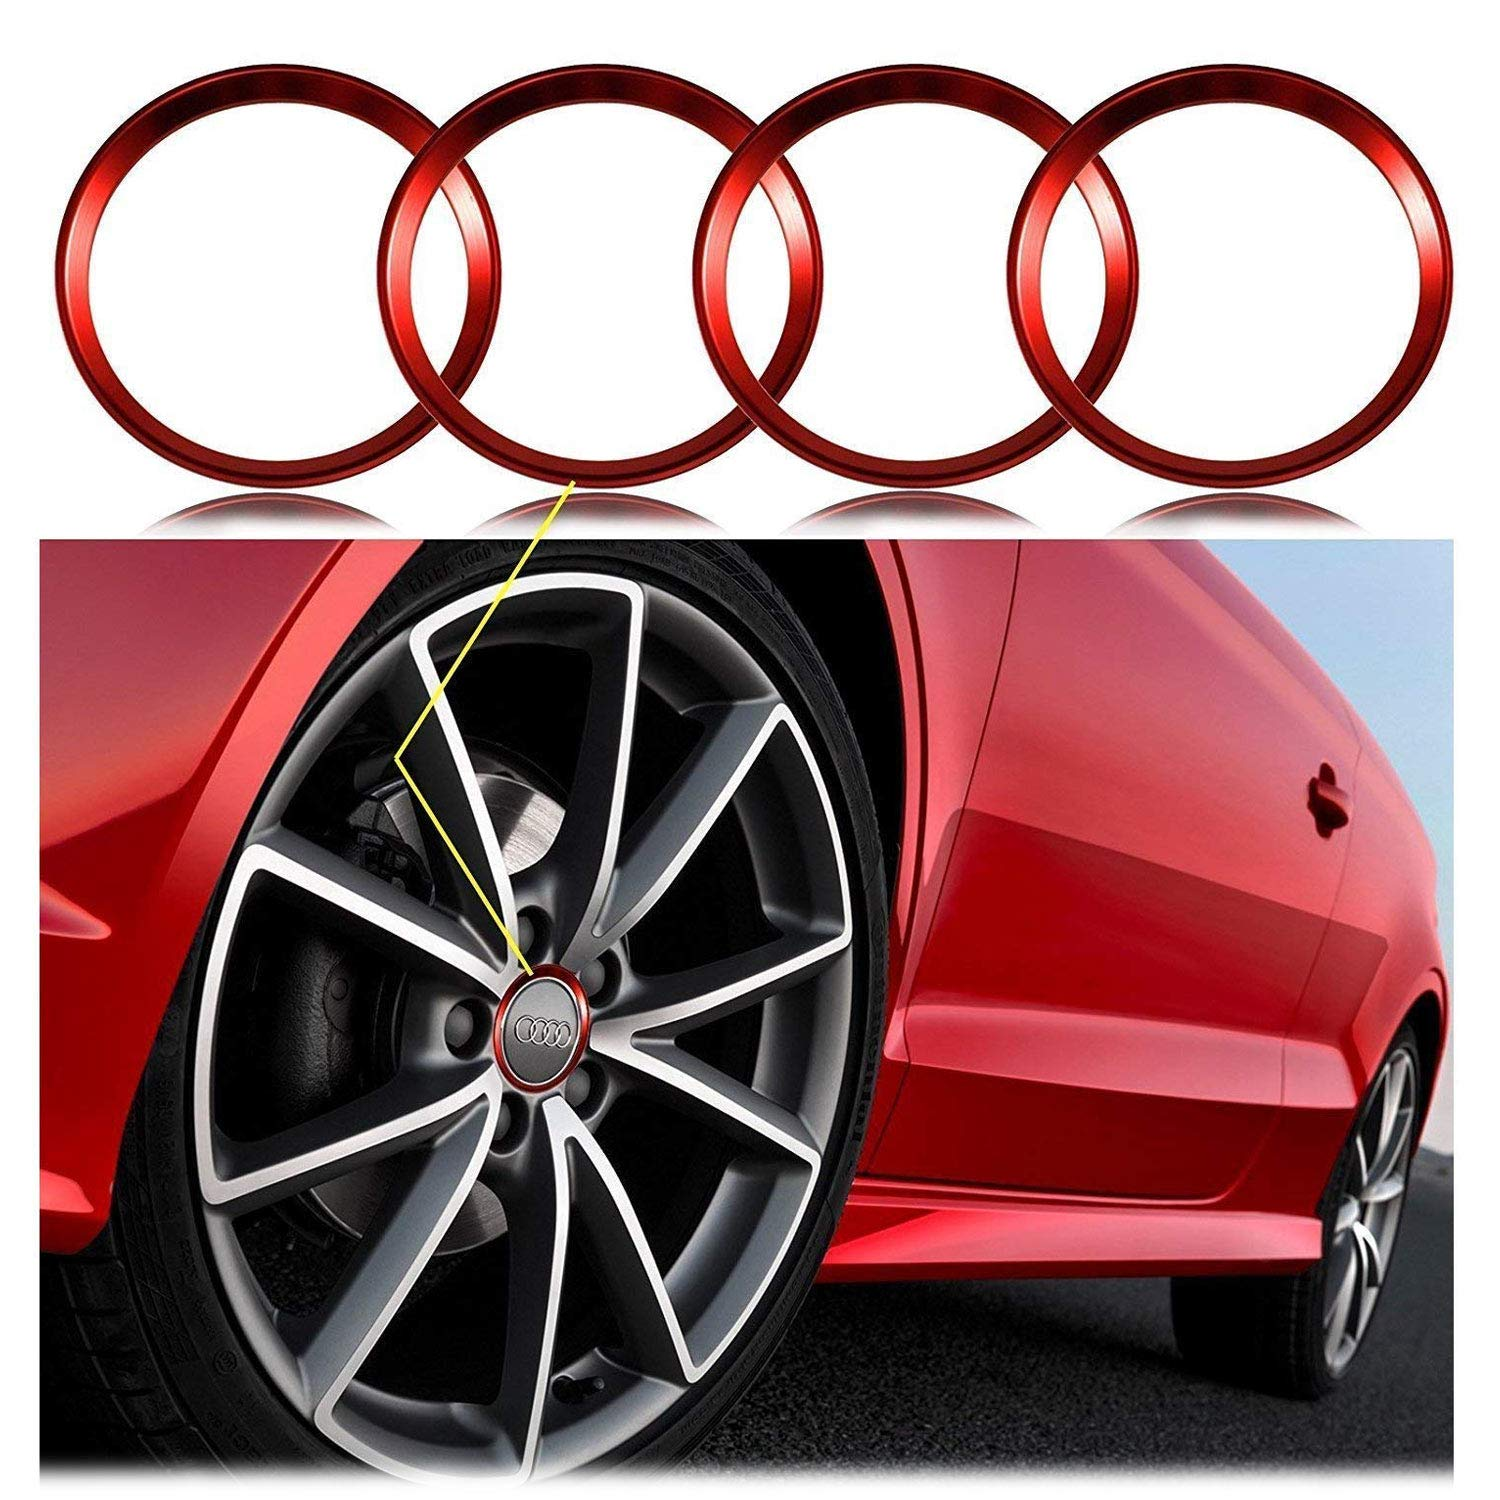 Xotic Tech 4 Pieces Red Alloy Car Wheel Rim Center Cap Hub Rings Decoration for Audi A3 A4 A5 TT Quattro, BMW X1 X3 X5 1 3 5 6 7 Series Xotic Tech Direct